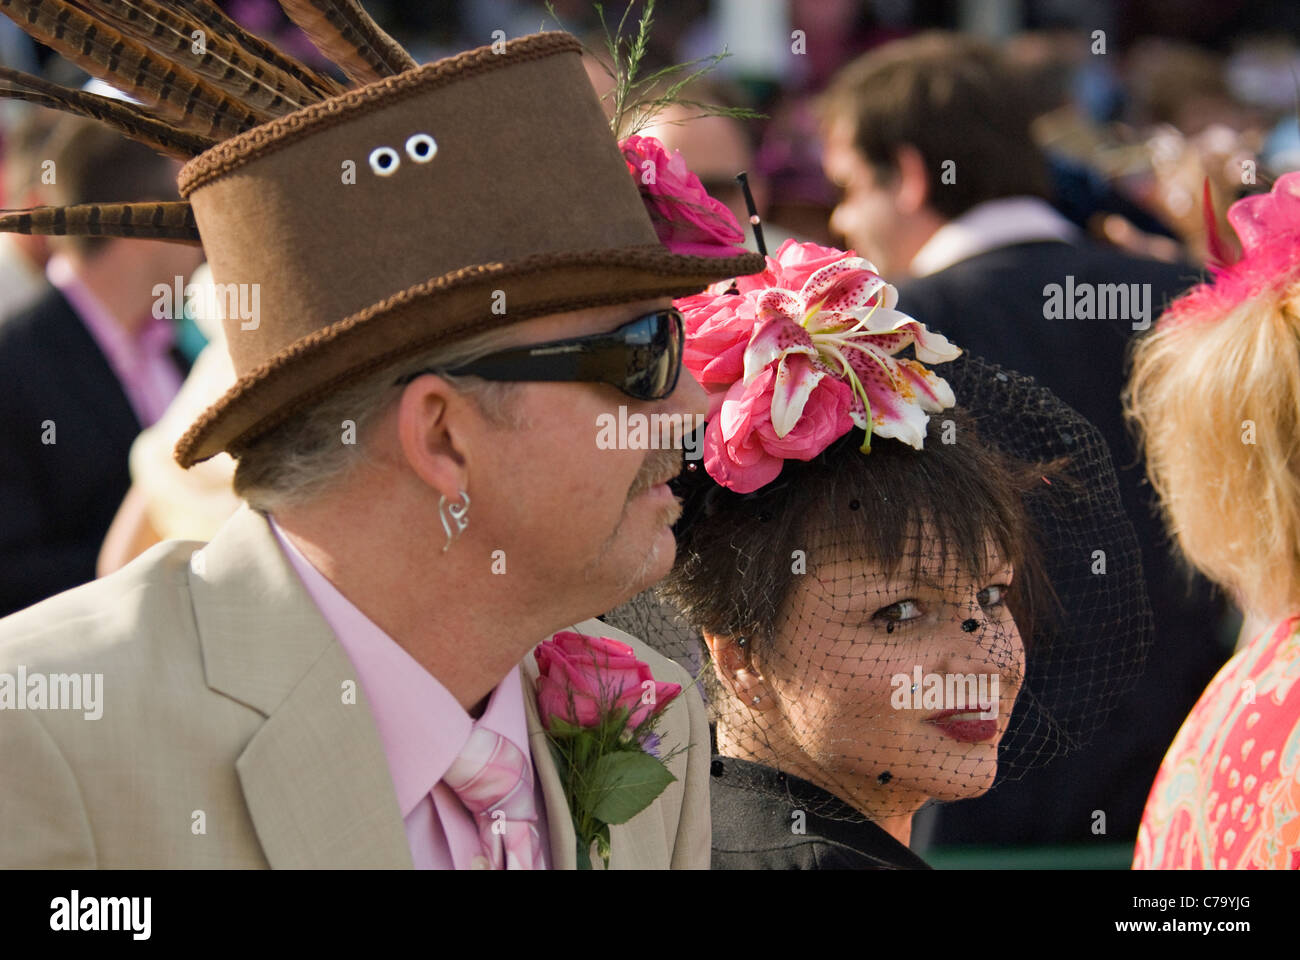 Man and Woman in Fancy Hats at Churchill Downs on Oaks Day in Louisville, Kentucky - Stock Image